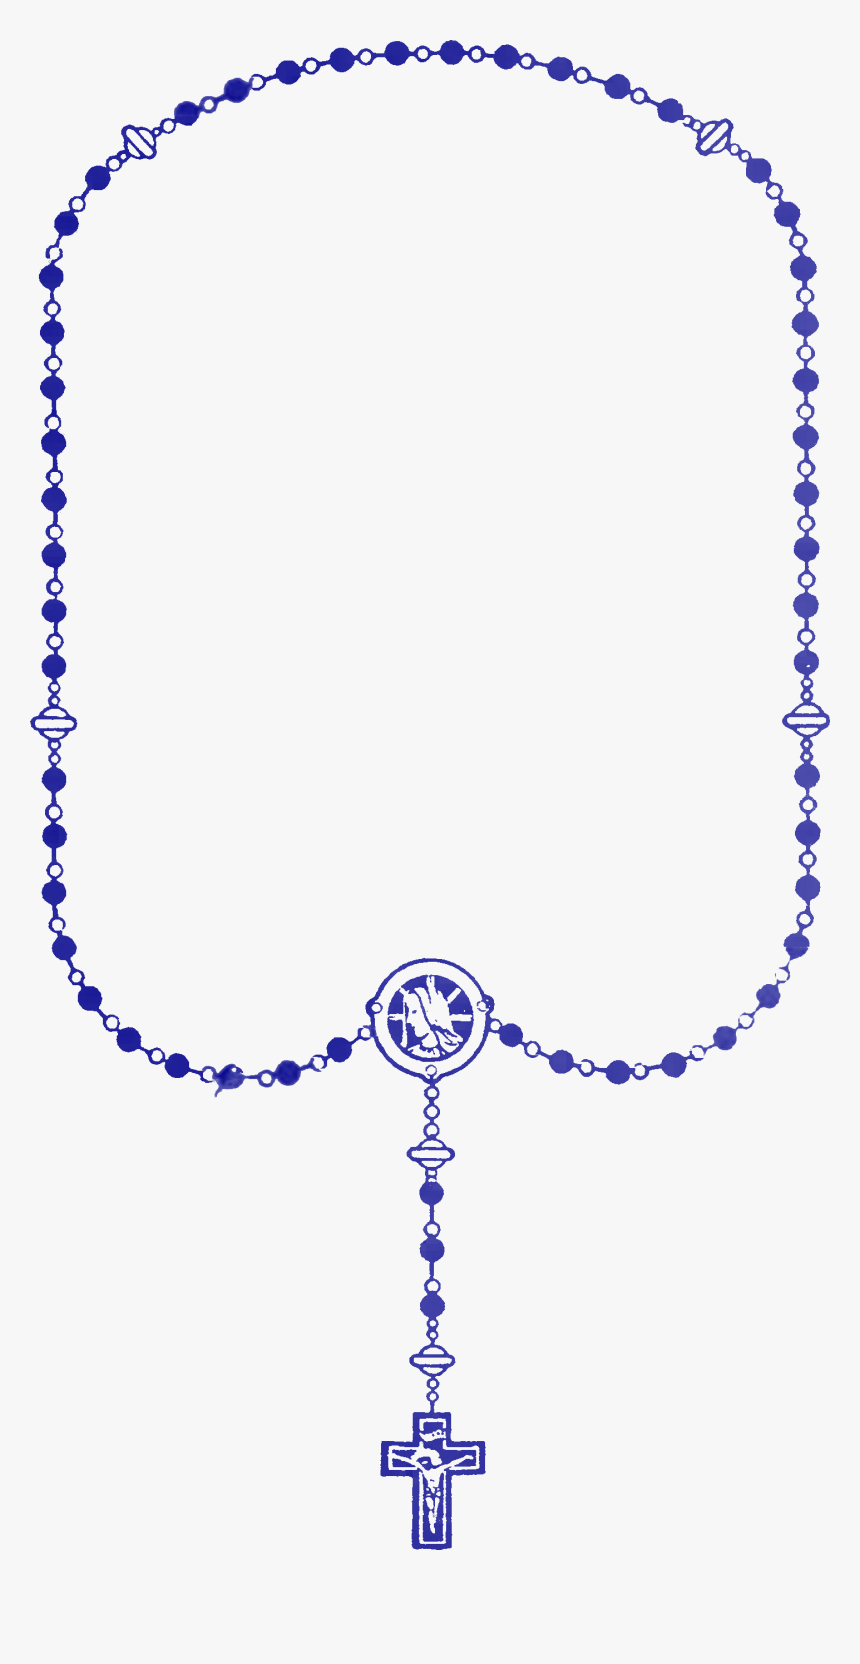 File - Rosary-blue - Blue Rosary Clip Art, HD Png Download, Free Download